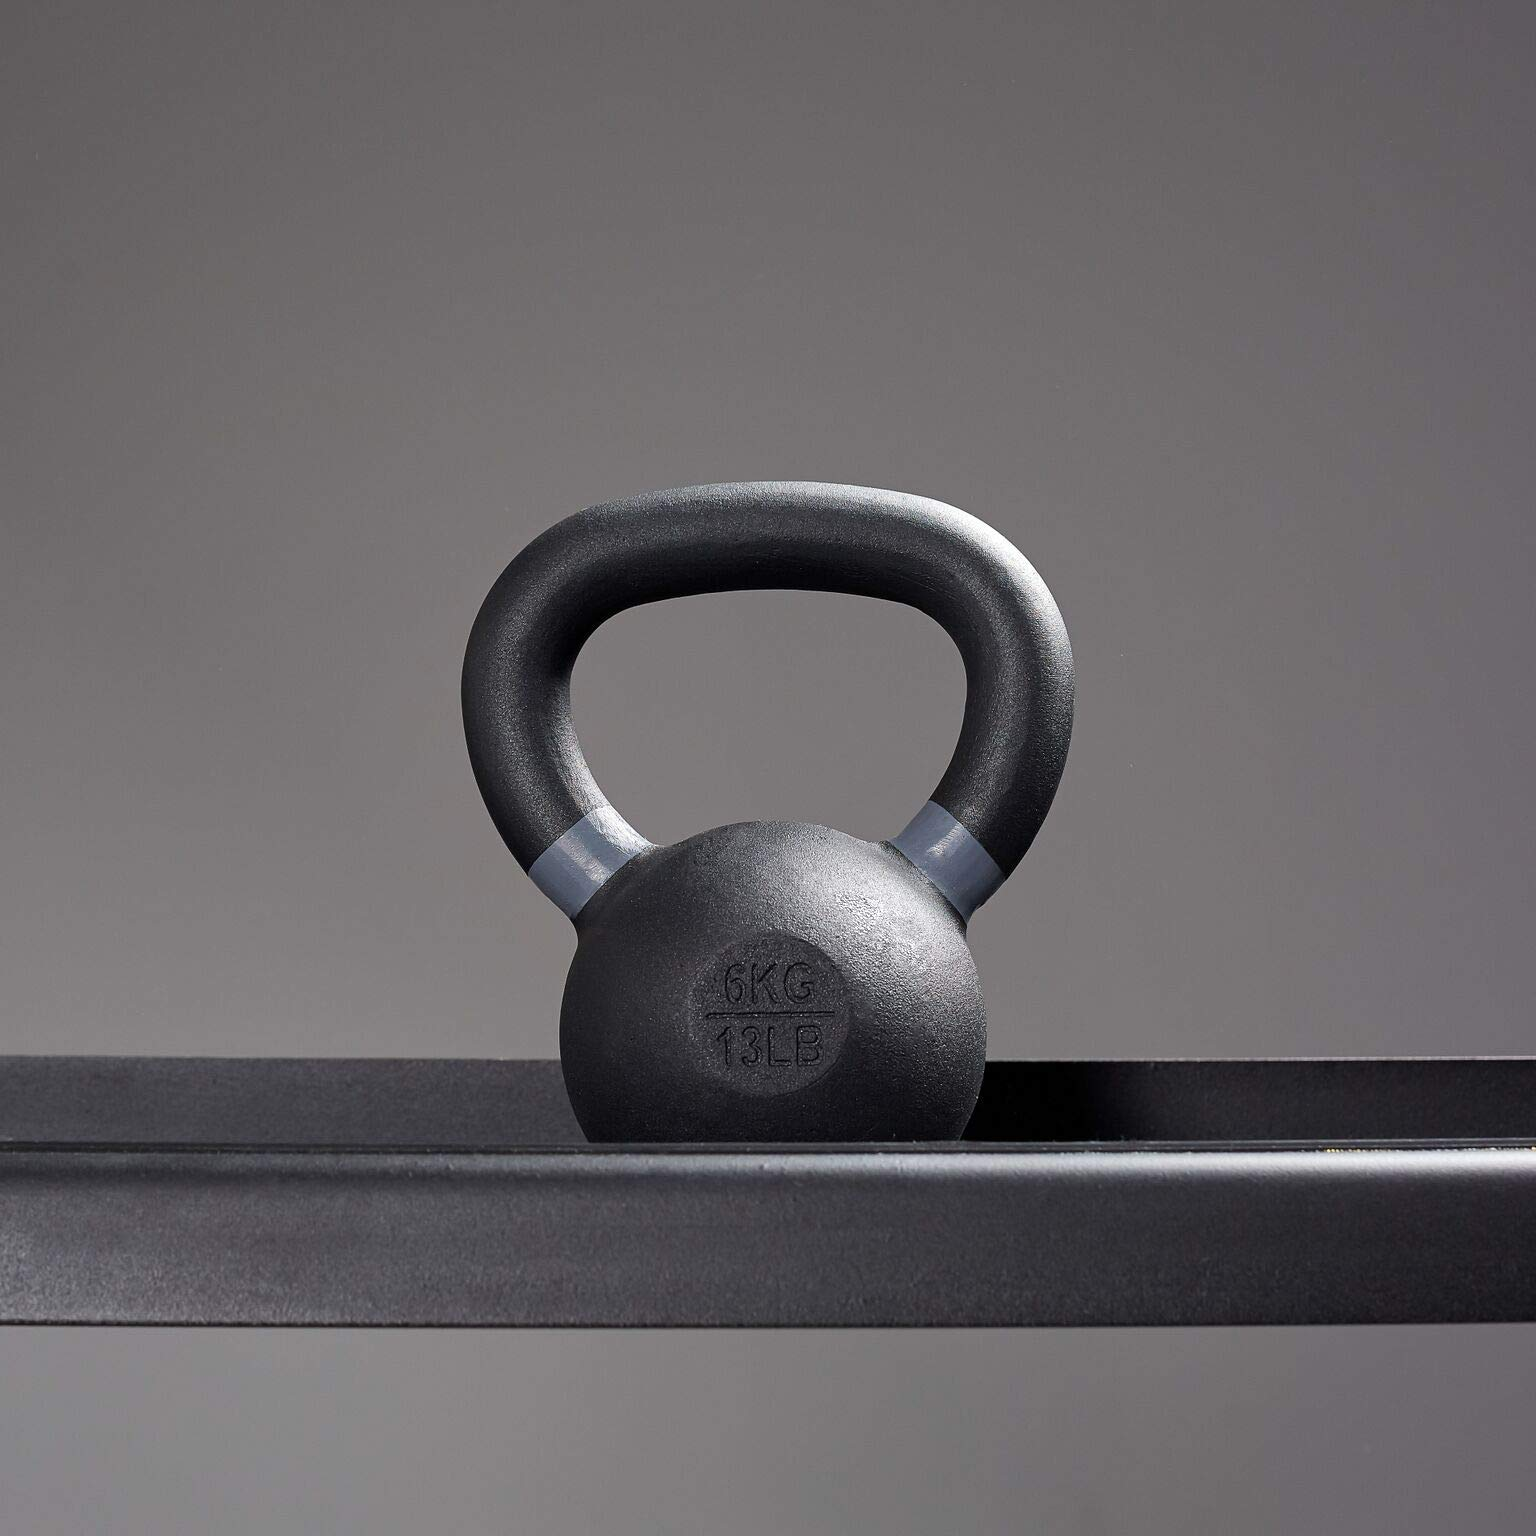 Rep 6 kg Kettlebell for Strength and Conditioning by Rep Fitness (Image #3)